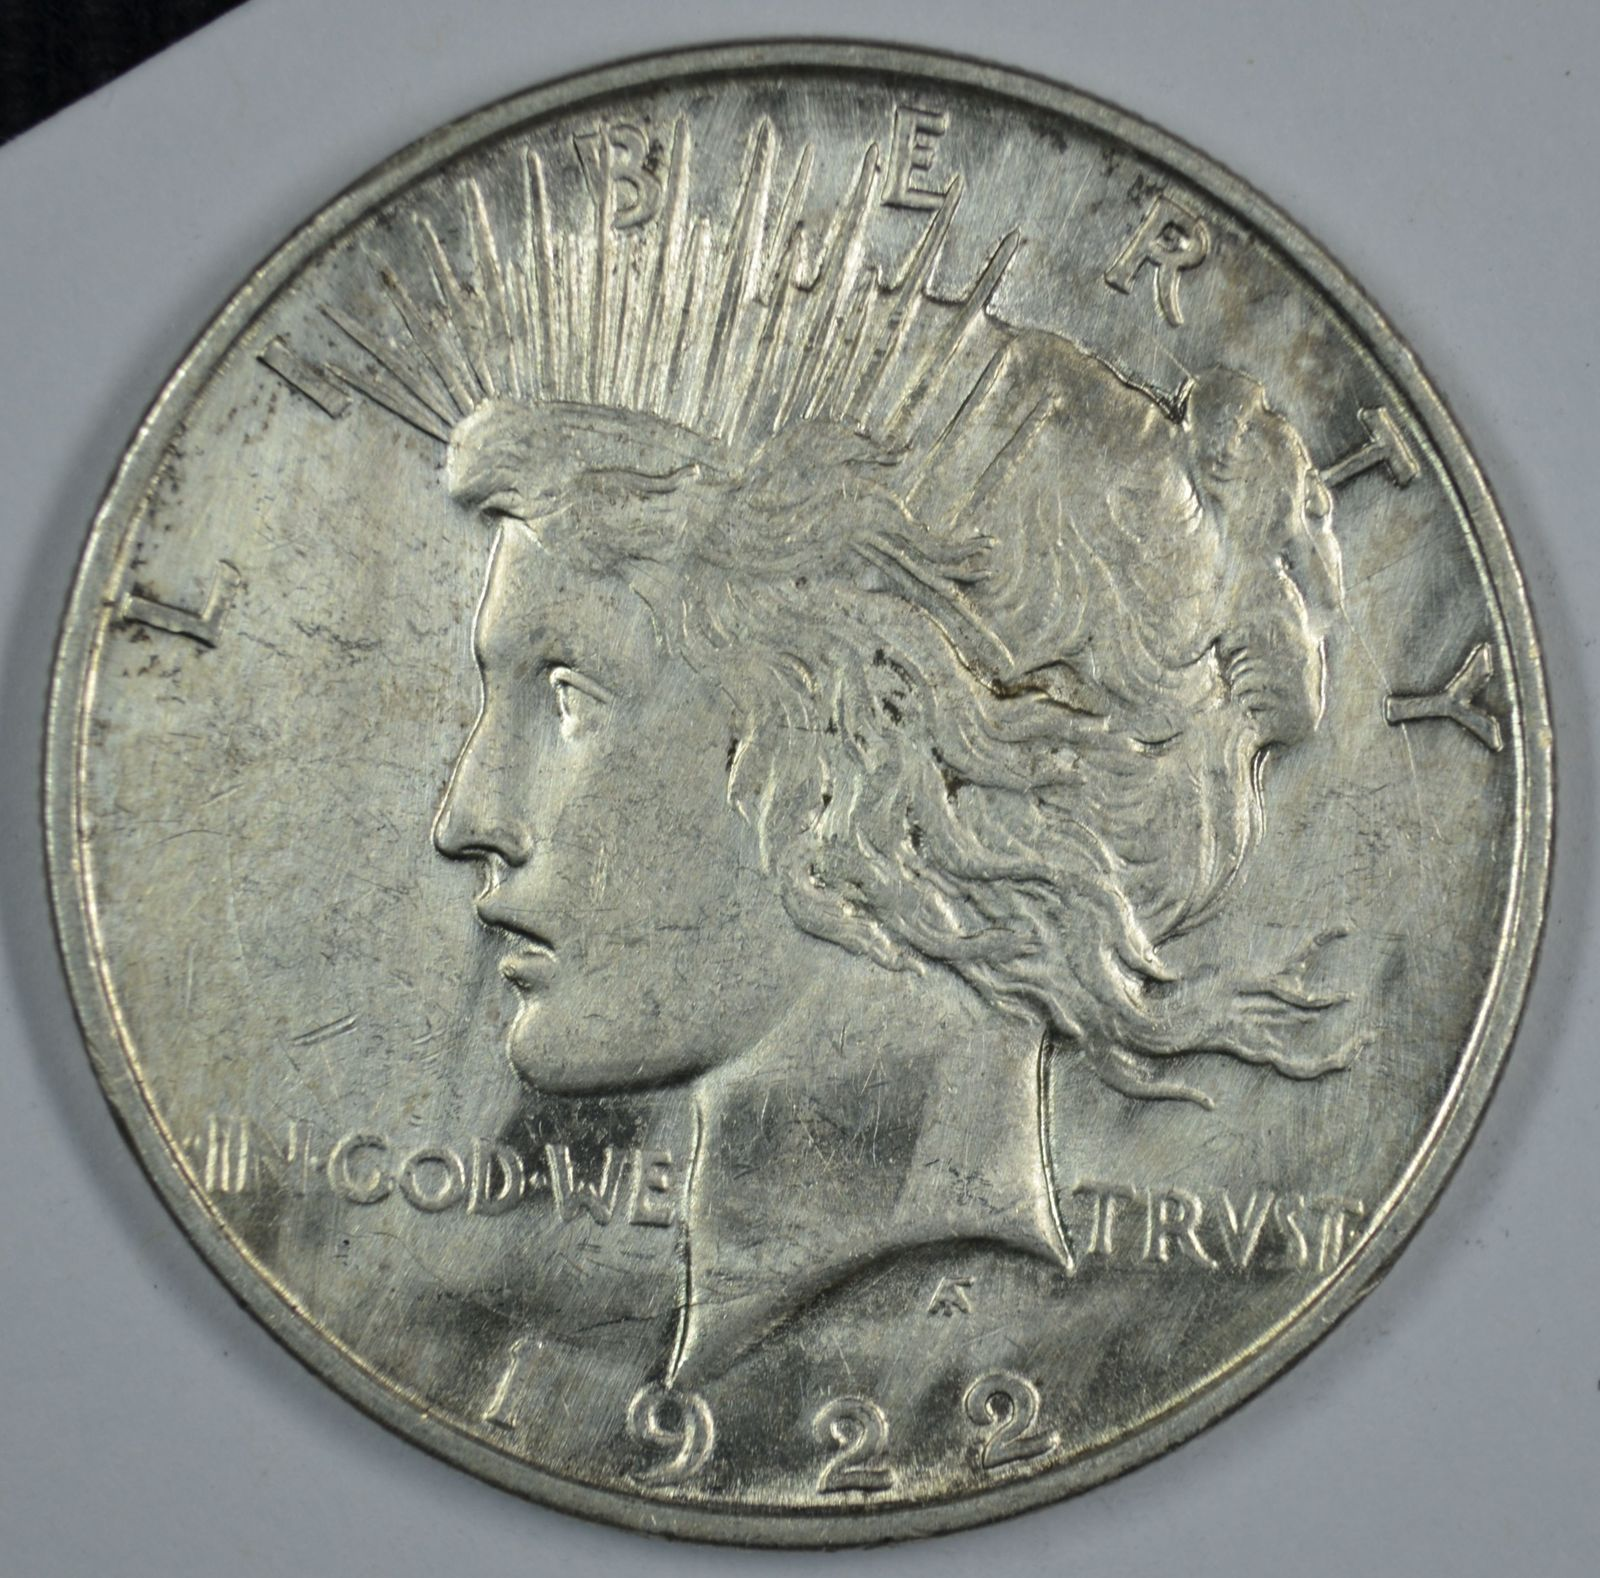 1922 D Peace circulated silver dollar XF details Mulitple Obverse Die Breaks - $45.00